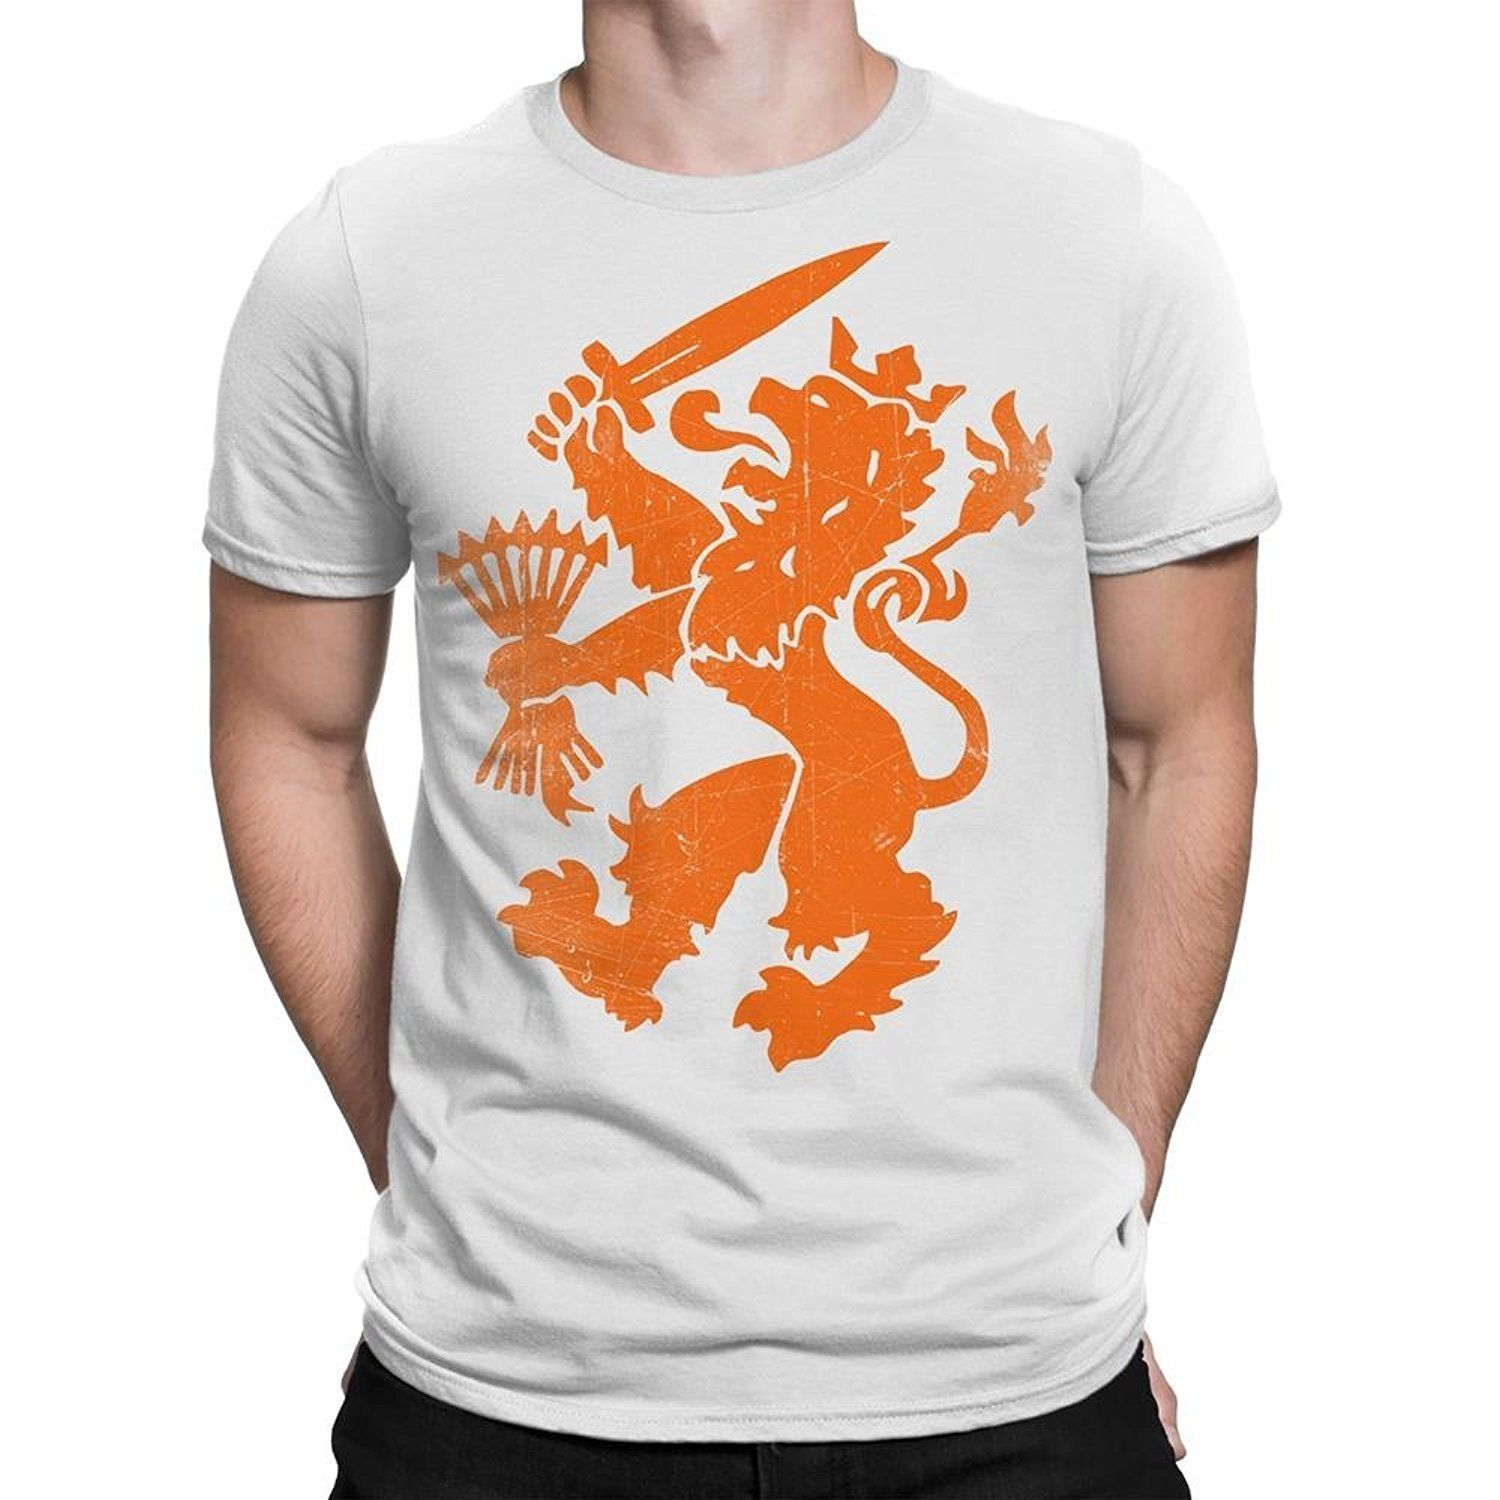 Nyc Factory Netherlands T-Shirt Dutch Oranje Lion Men Tee netherlands-tee-men-b Free shipping Tops Fashion Classic Unique